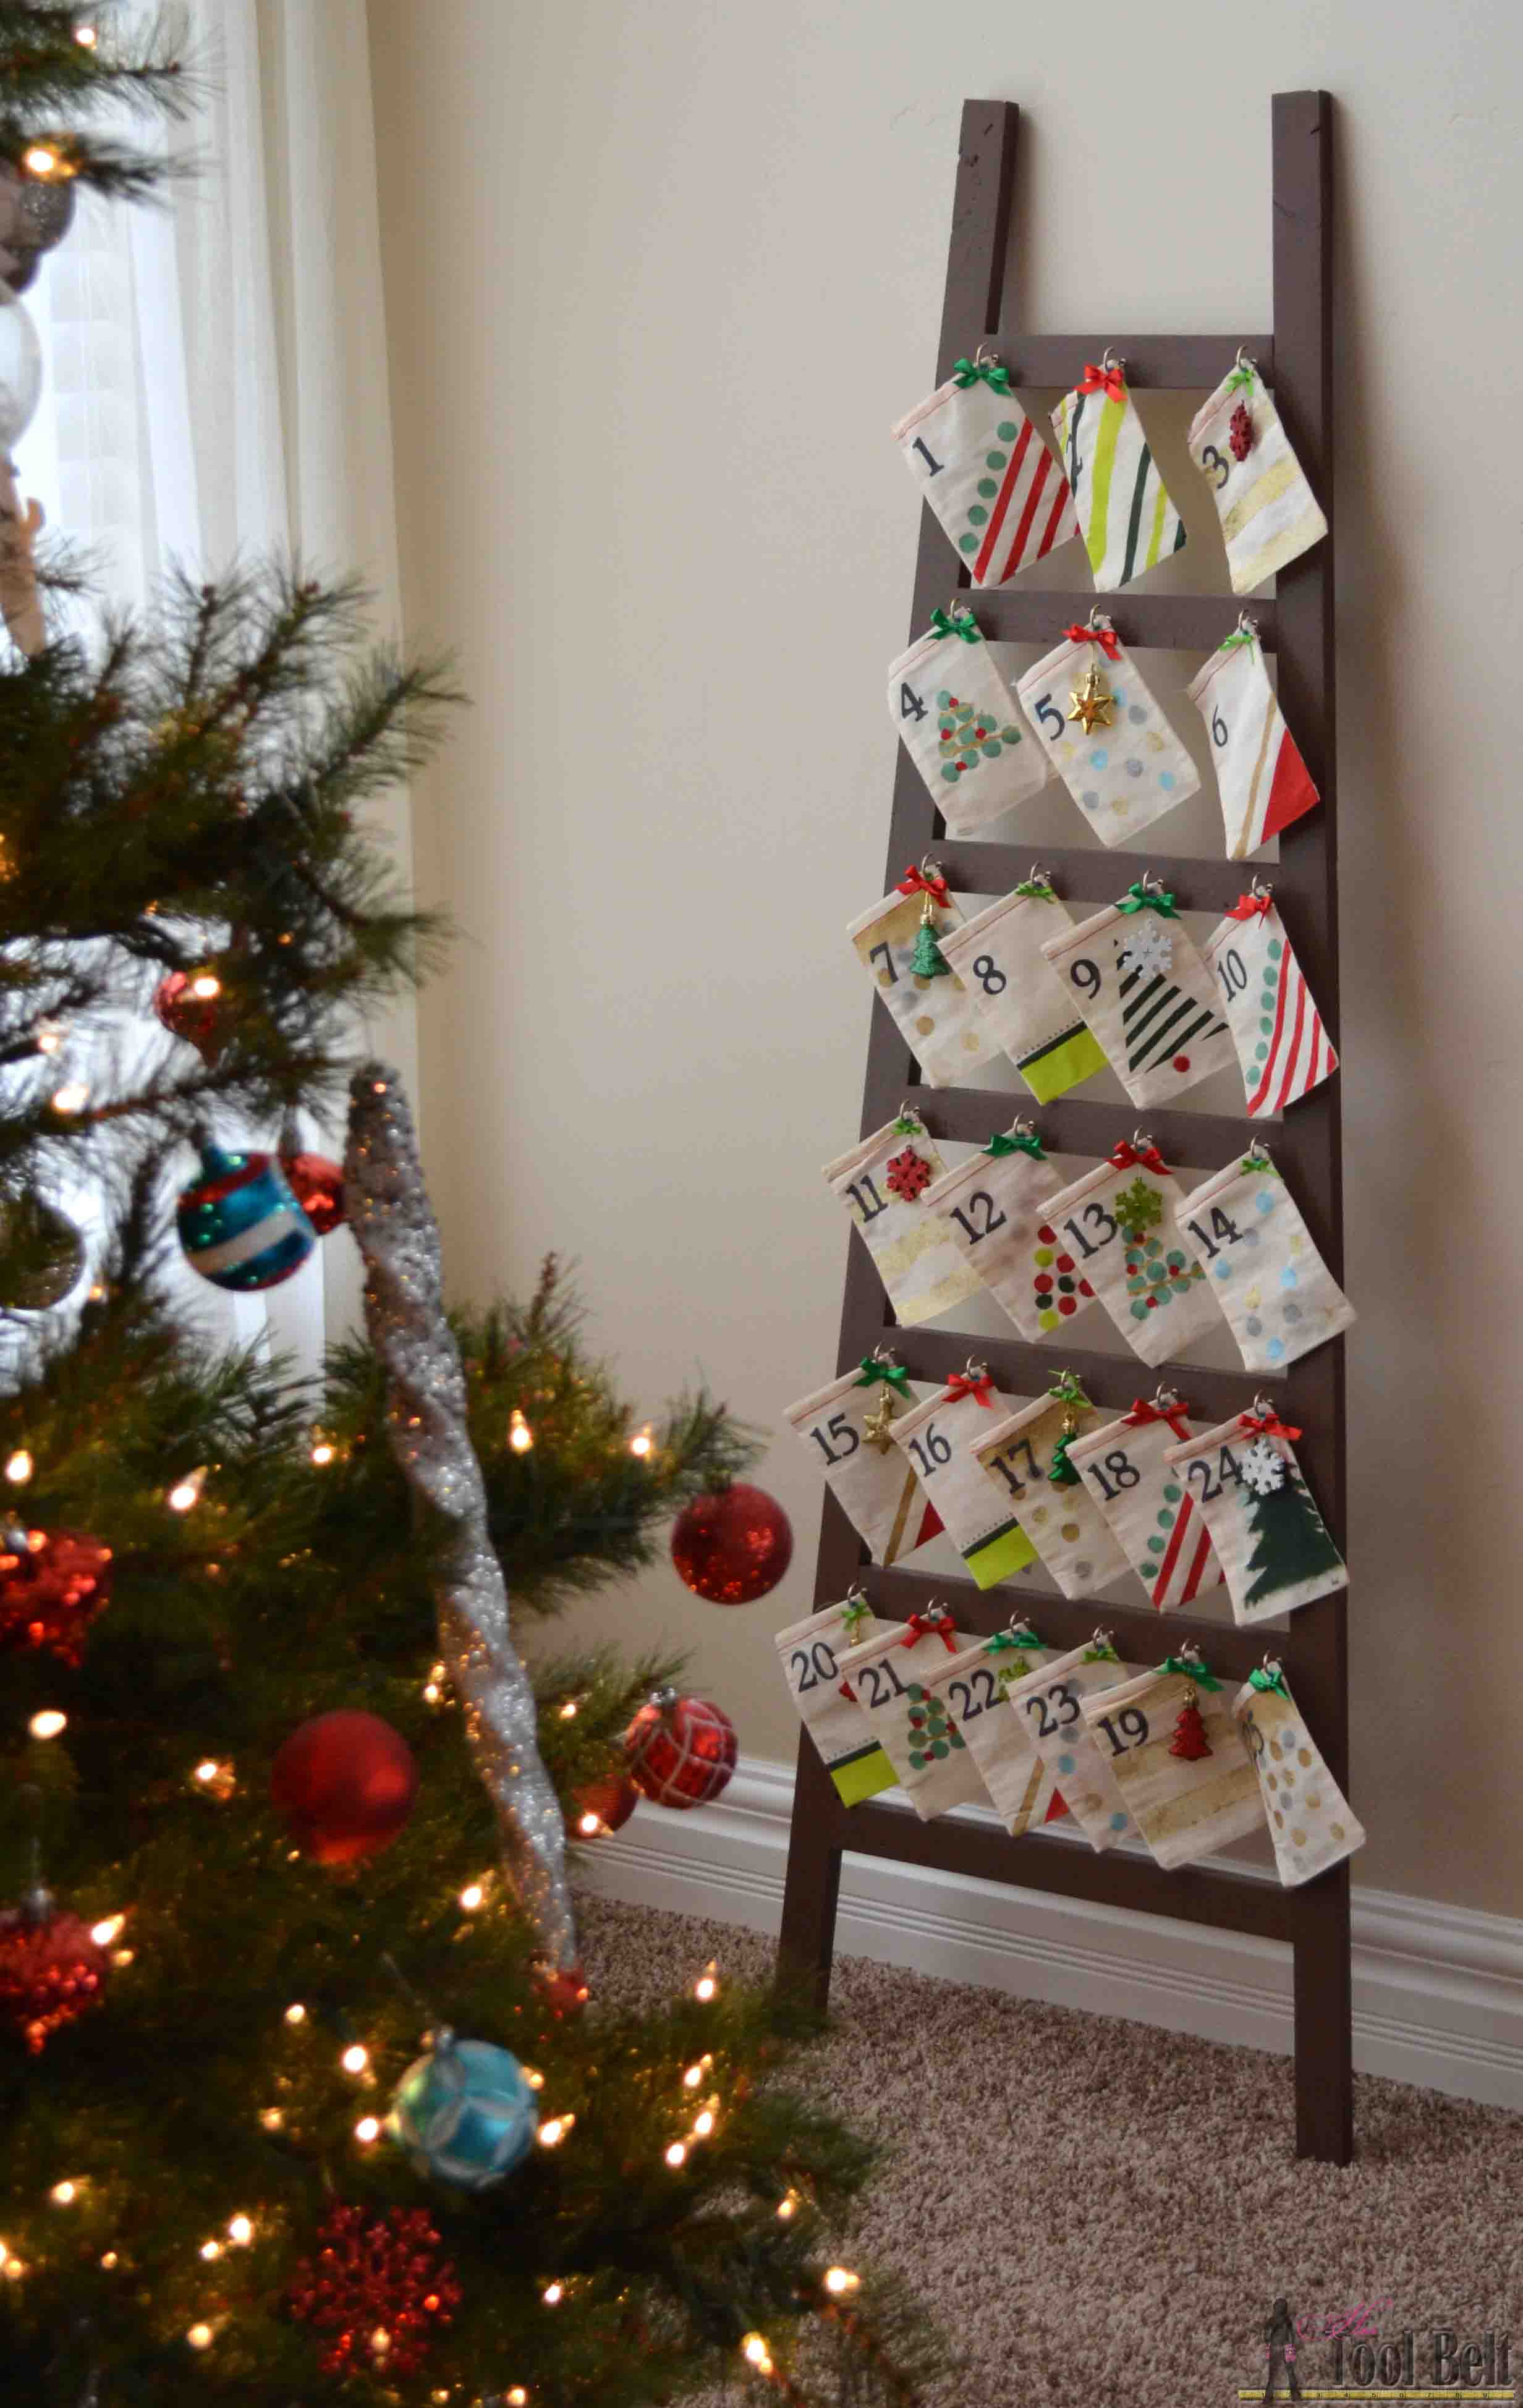 Ladder advent calendar her tool belt ladder advent calendar solutioingenieria Gallery